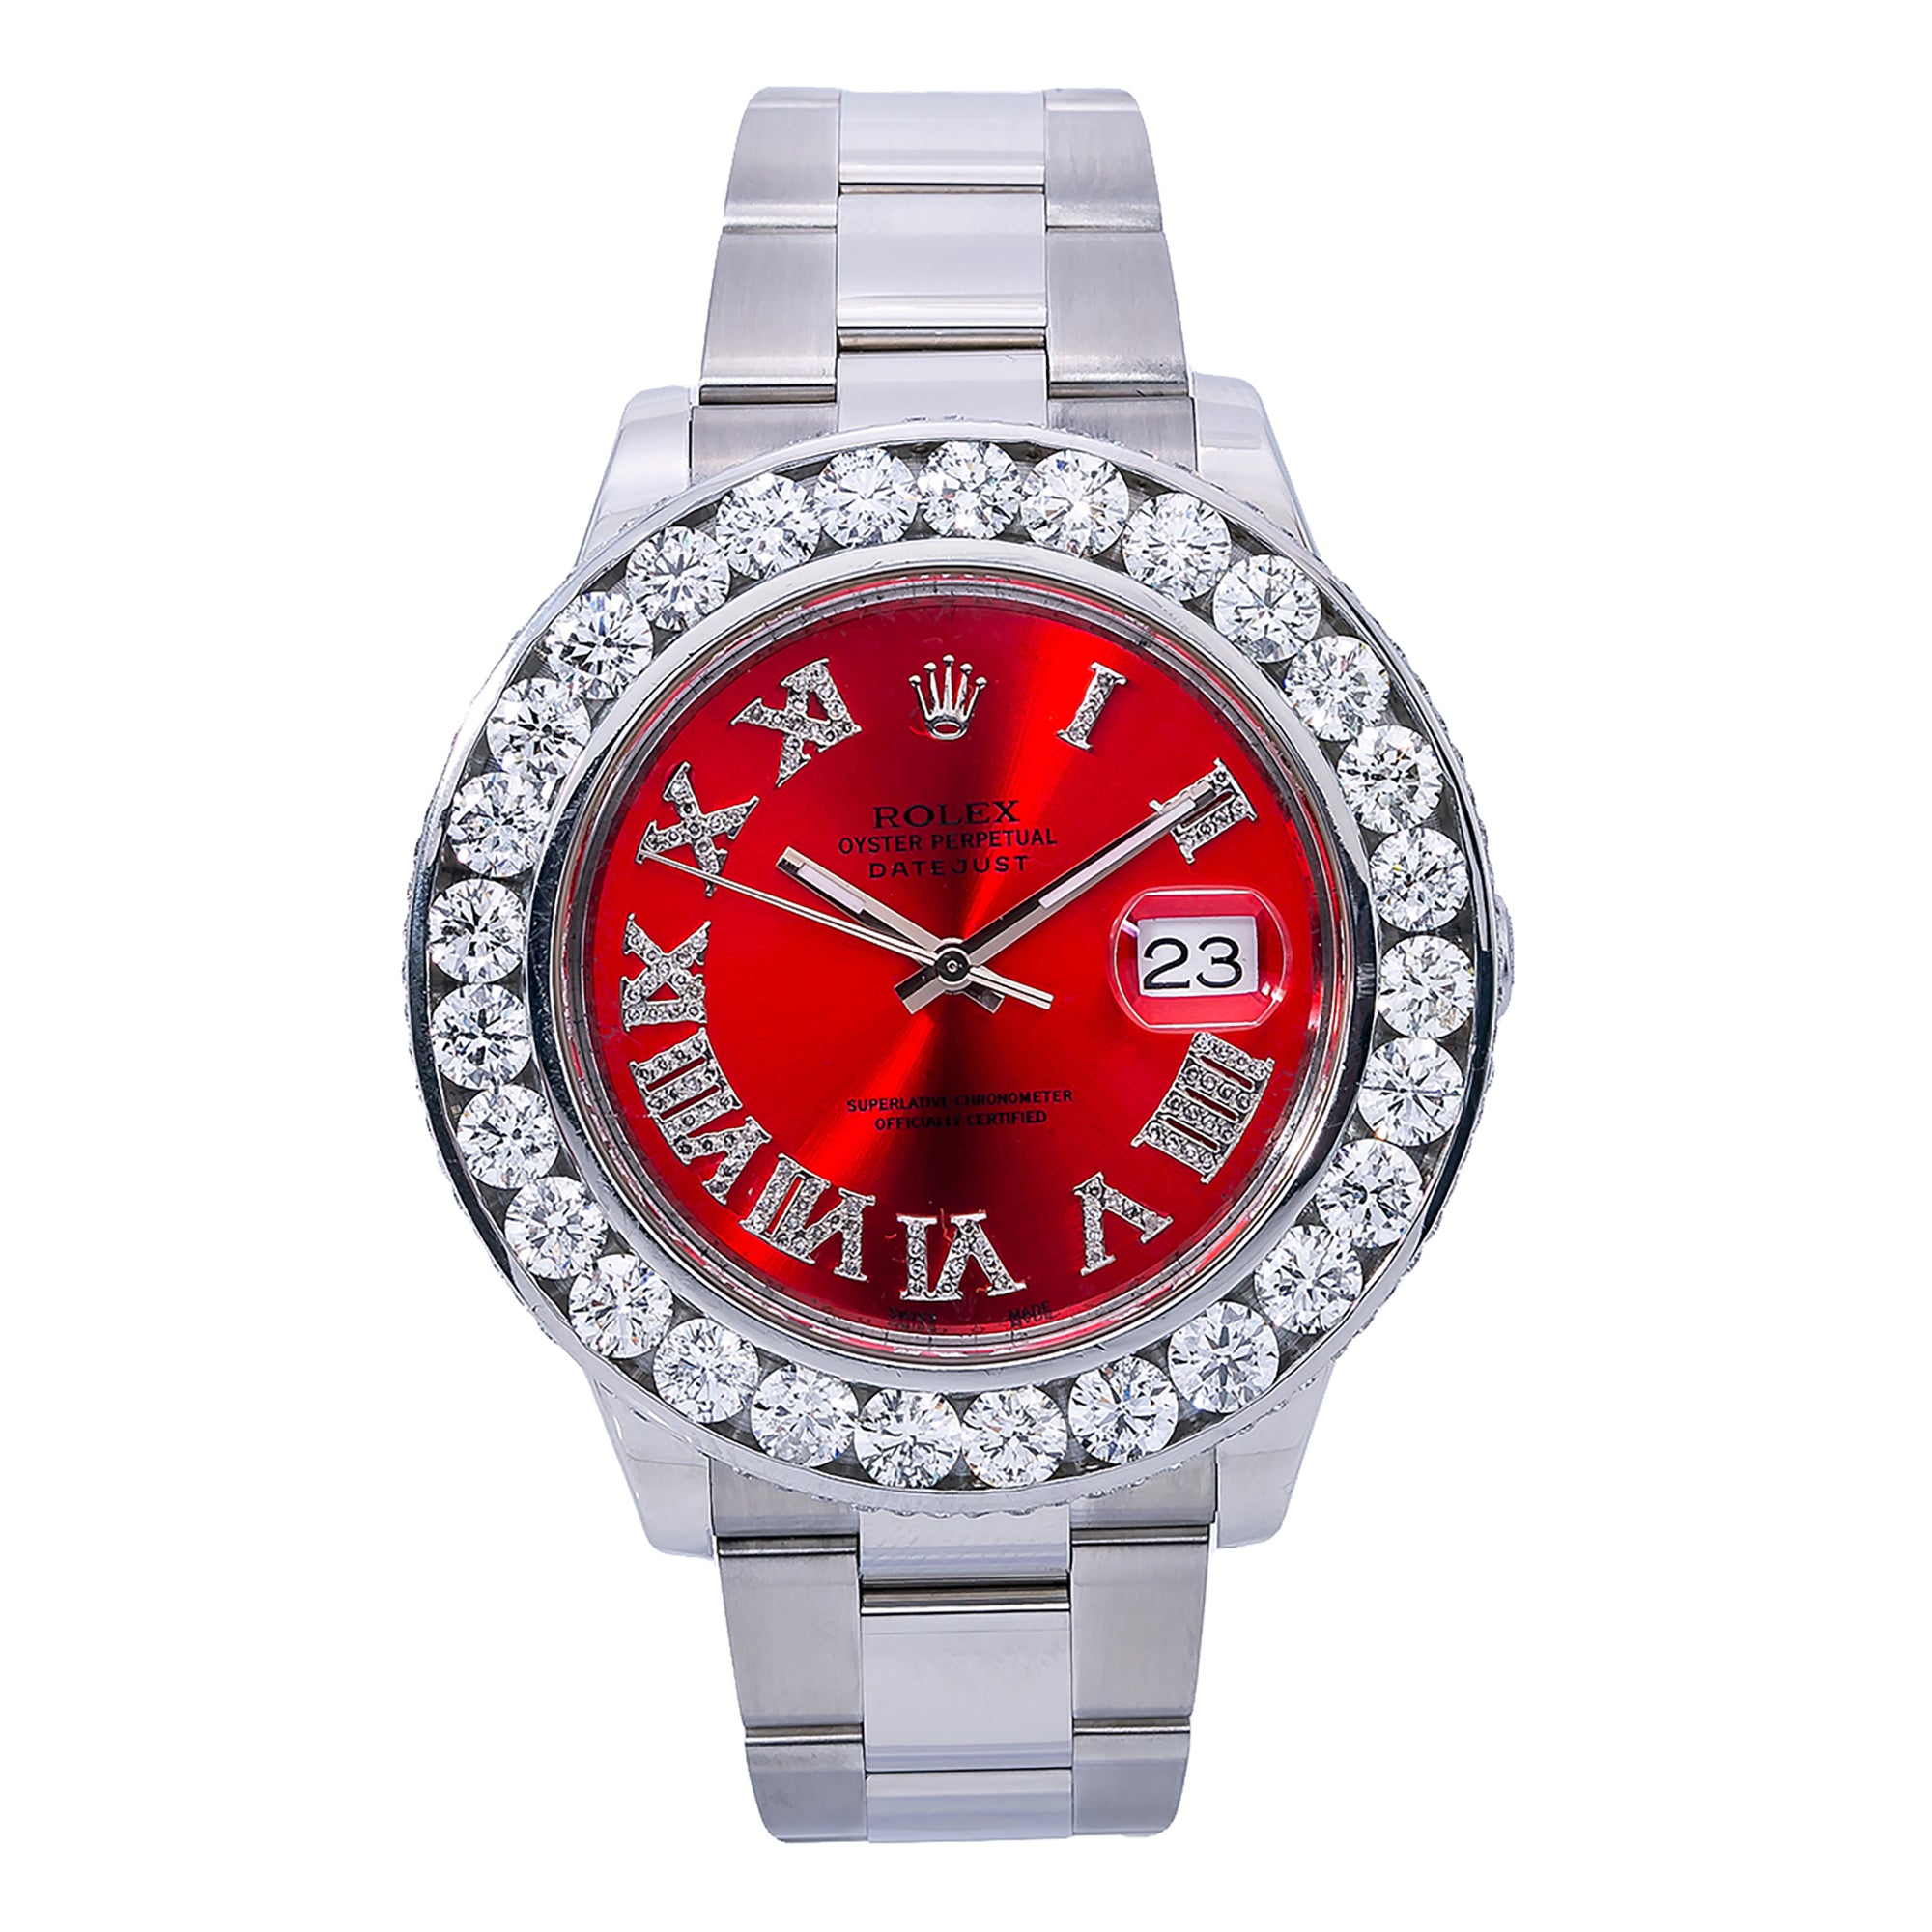 Rolex Datejust II 116300 41MM Red Diamond Dial With Stainless Steel Oyster Bracelet